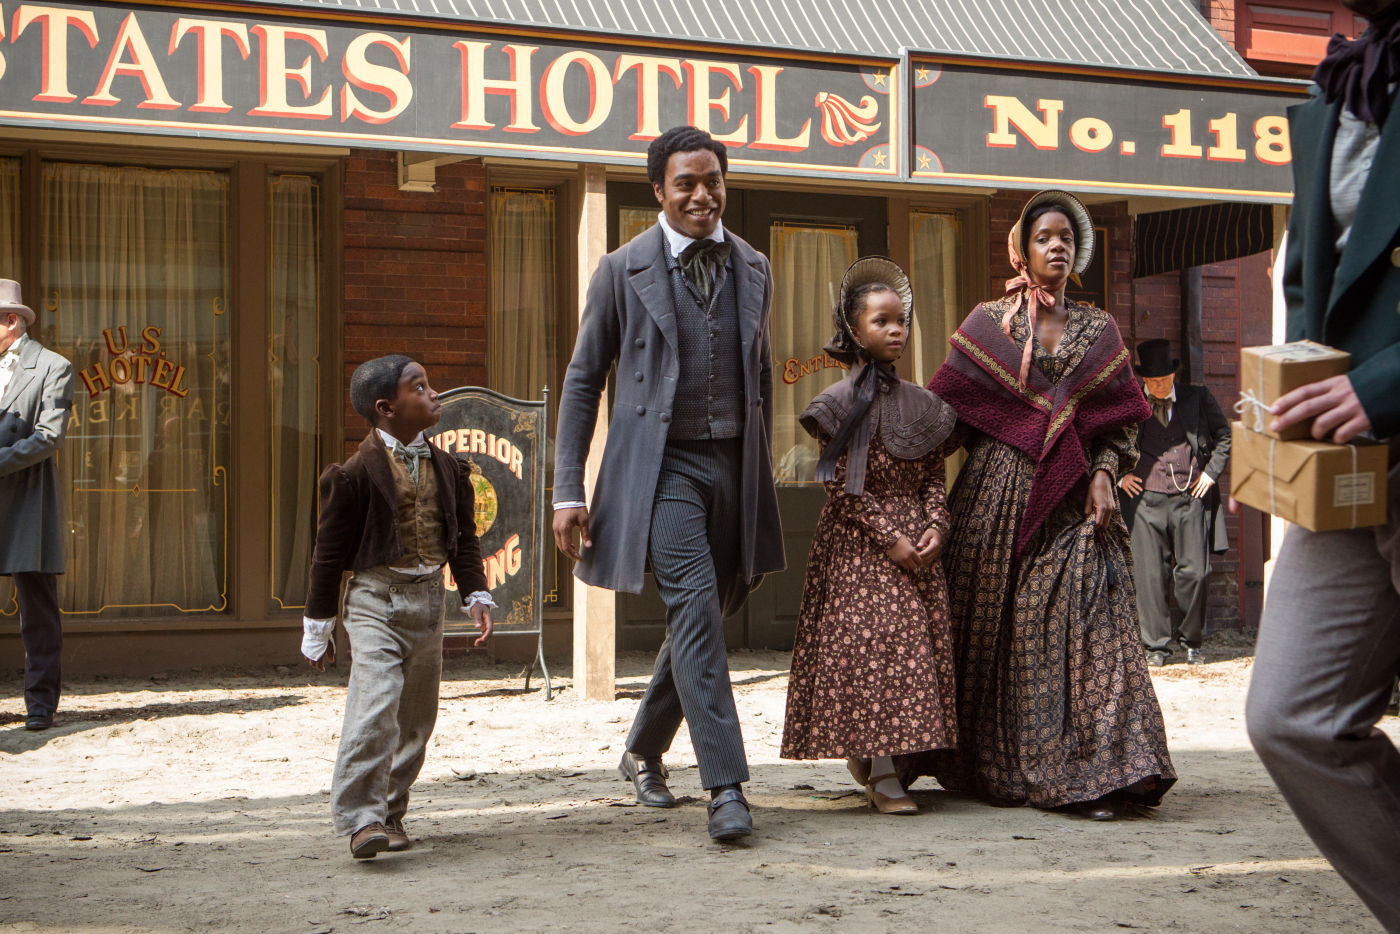 -12-Years-a-Slave-period-drama-fans-35976597-1400-934